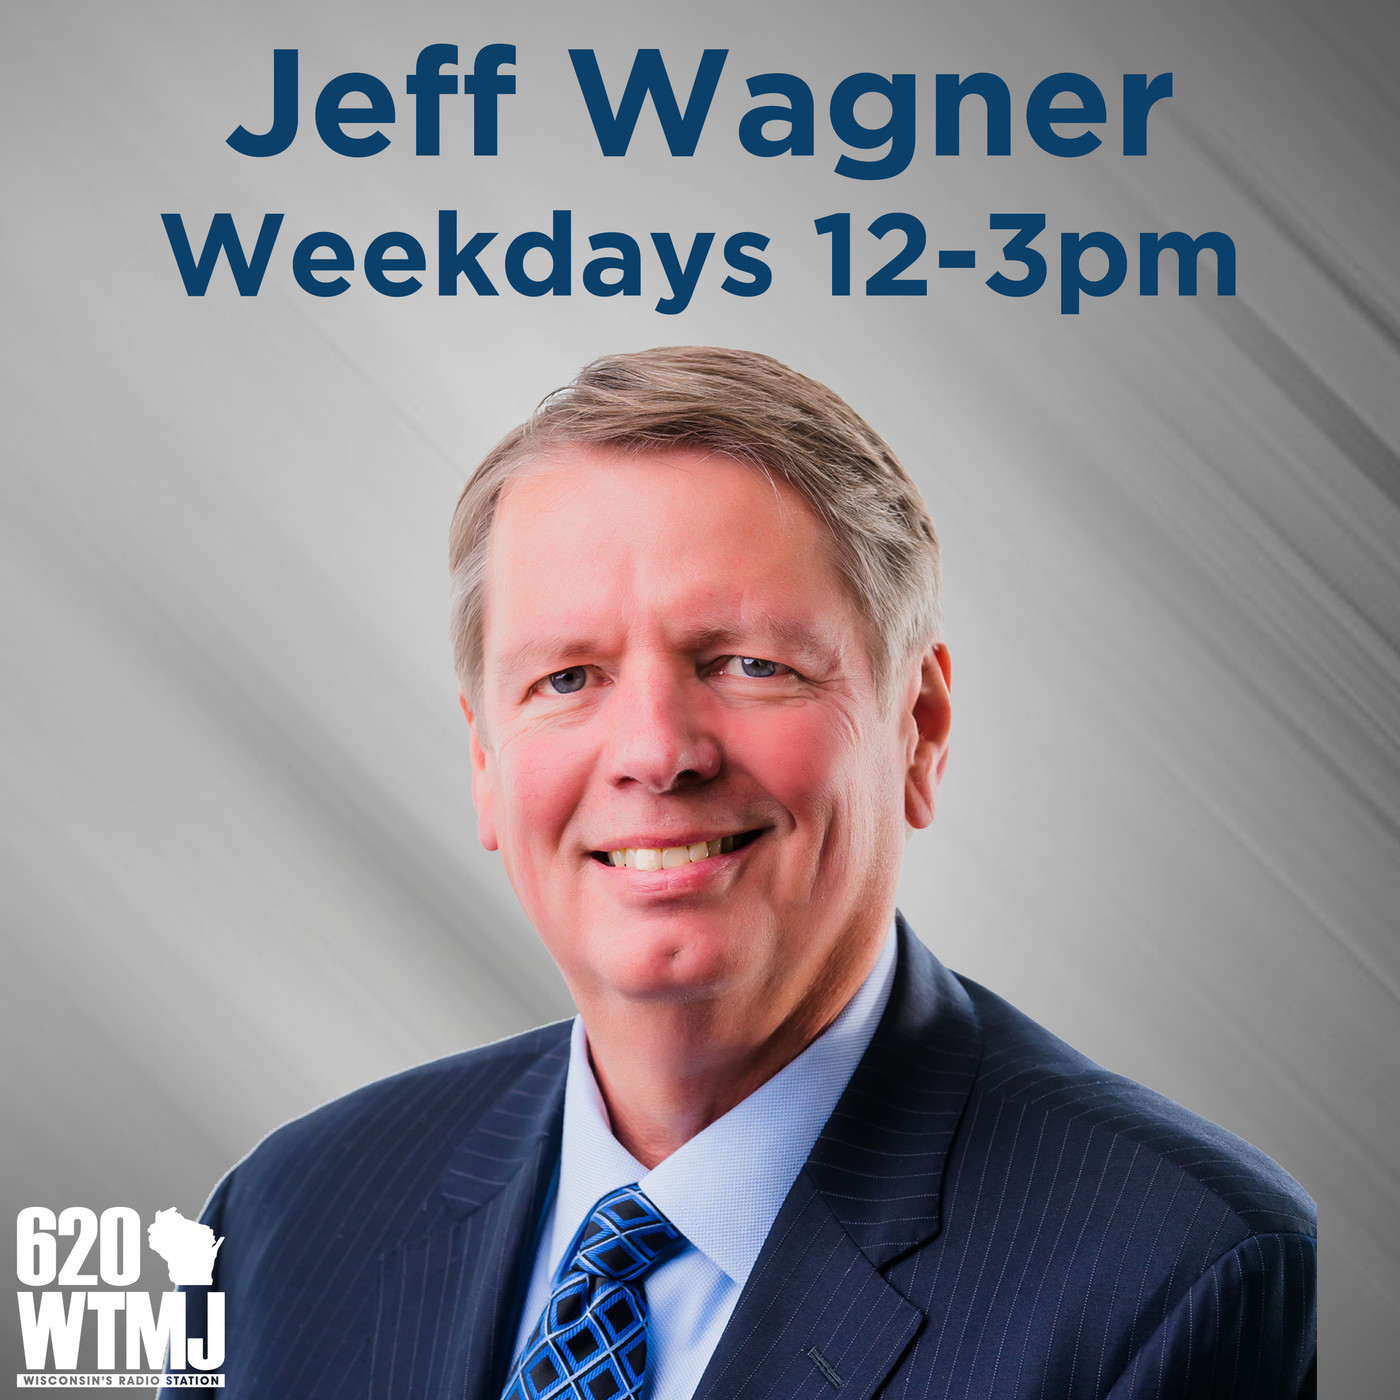 10/19/2020 - The Jeff Wagner Show